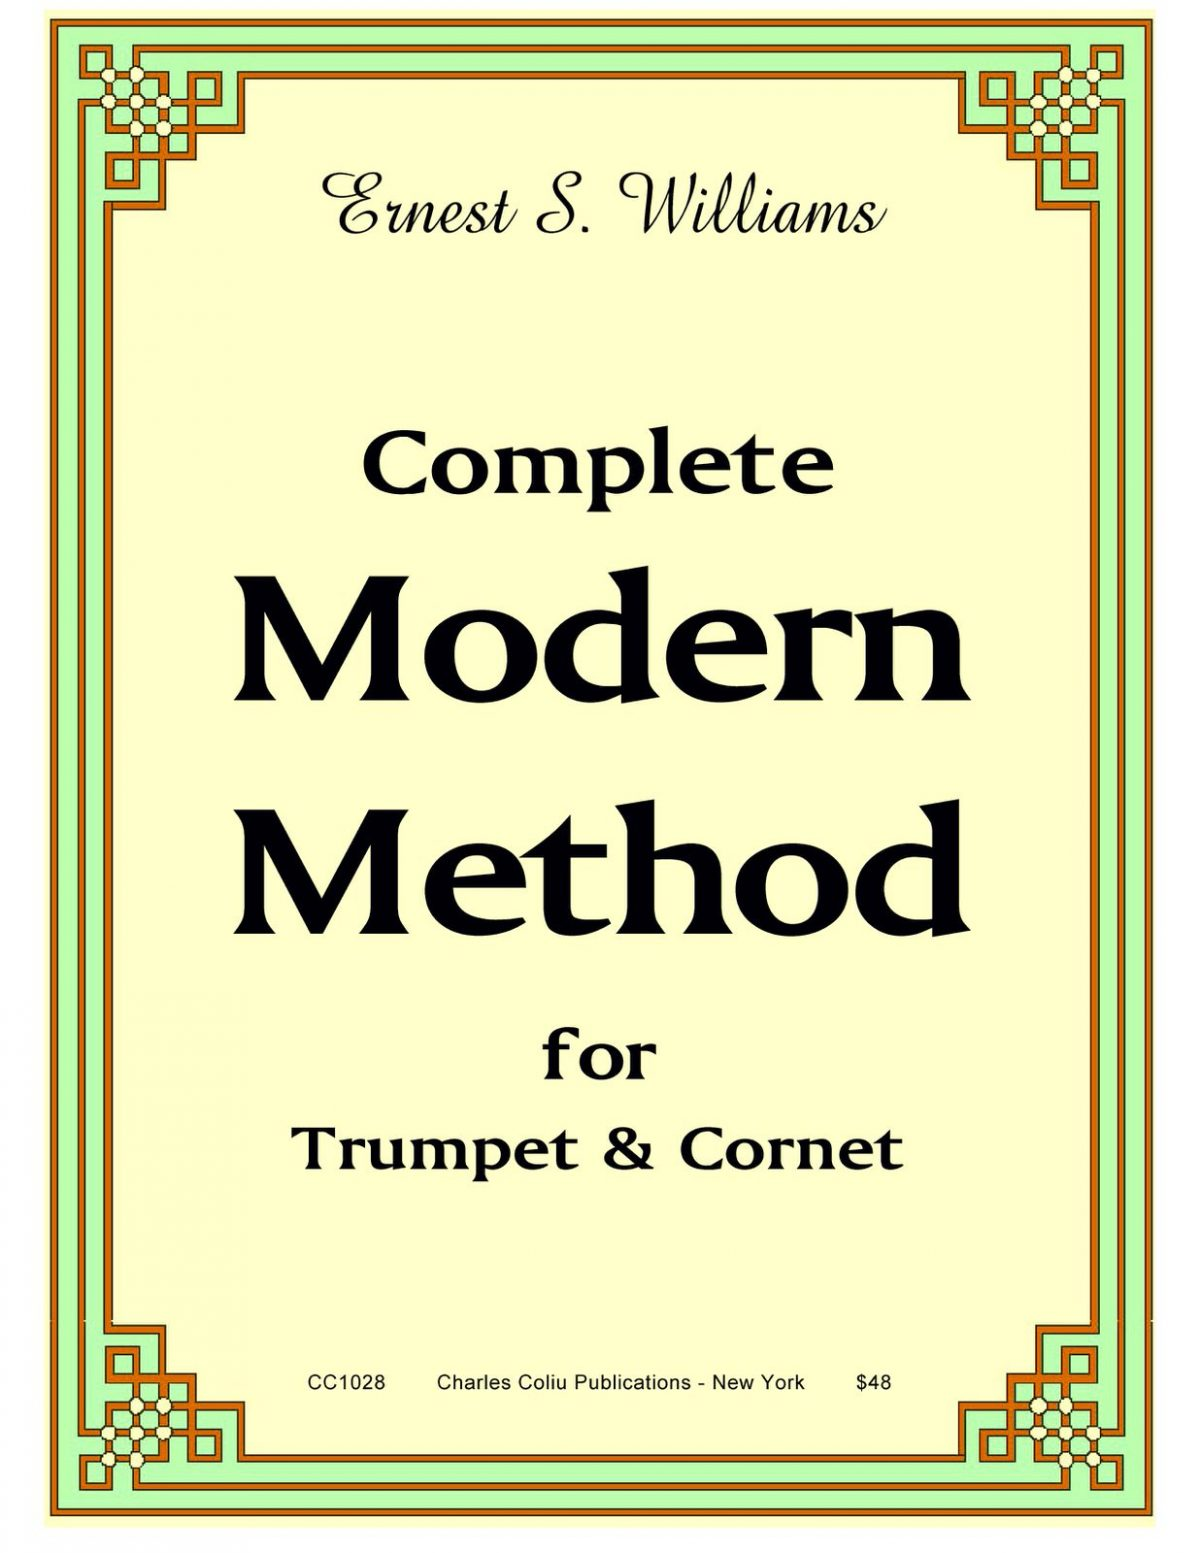 Ernest S. Williams Complete Modern Method PDF